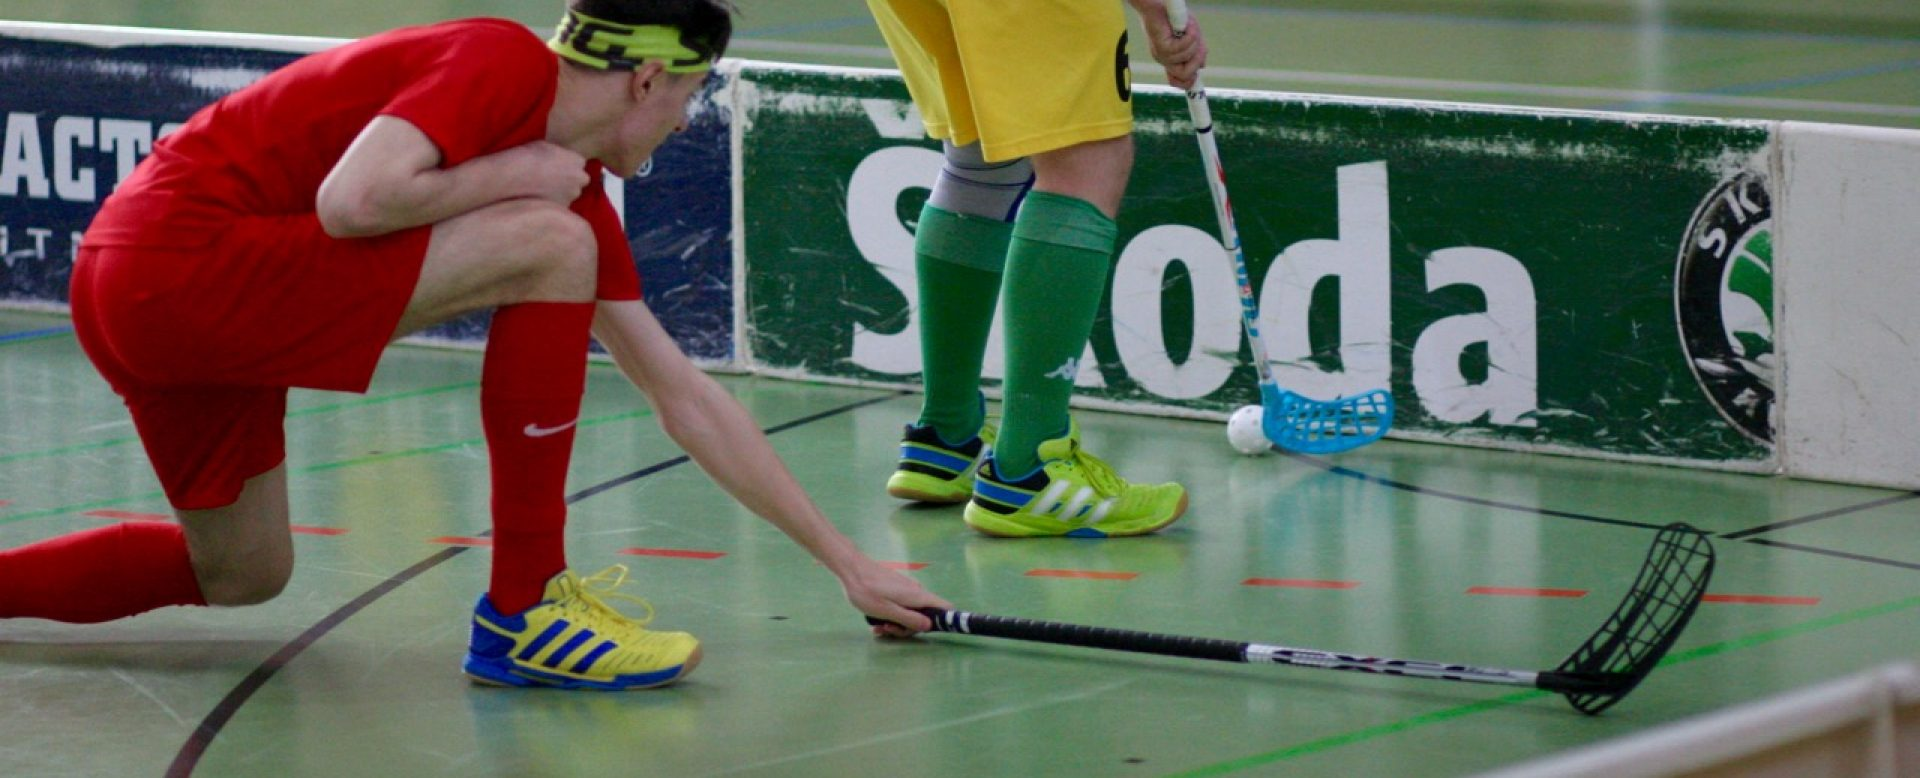 floorballbunnies